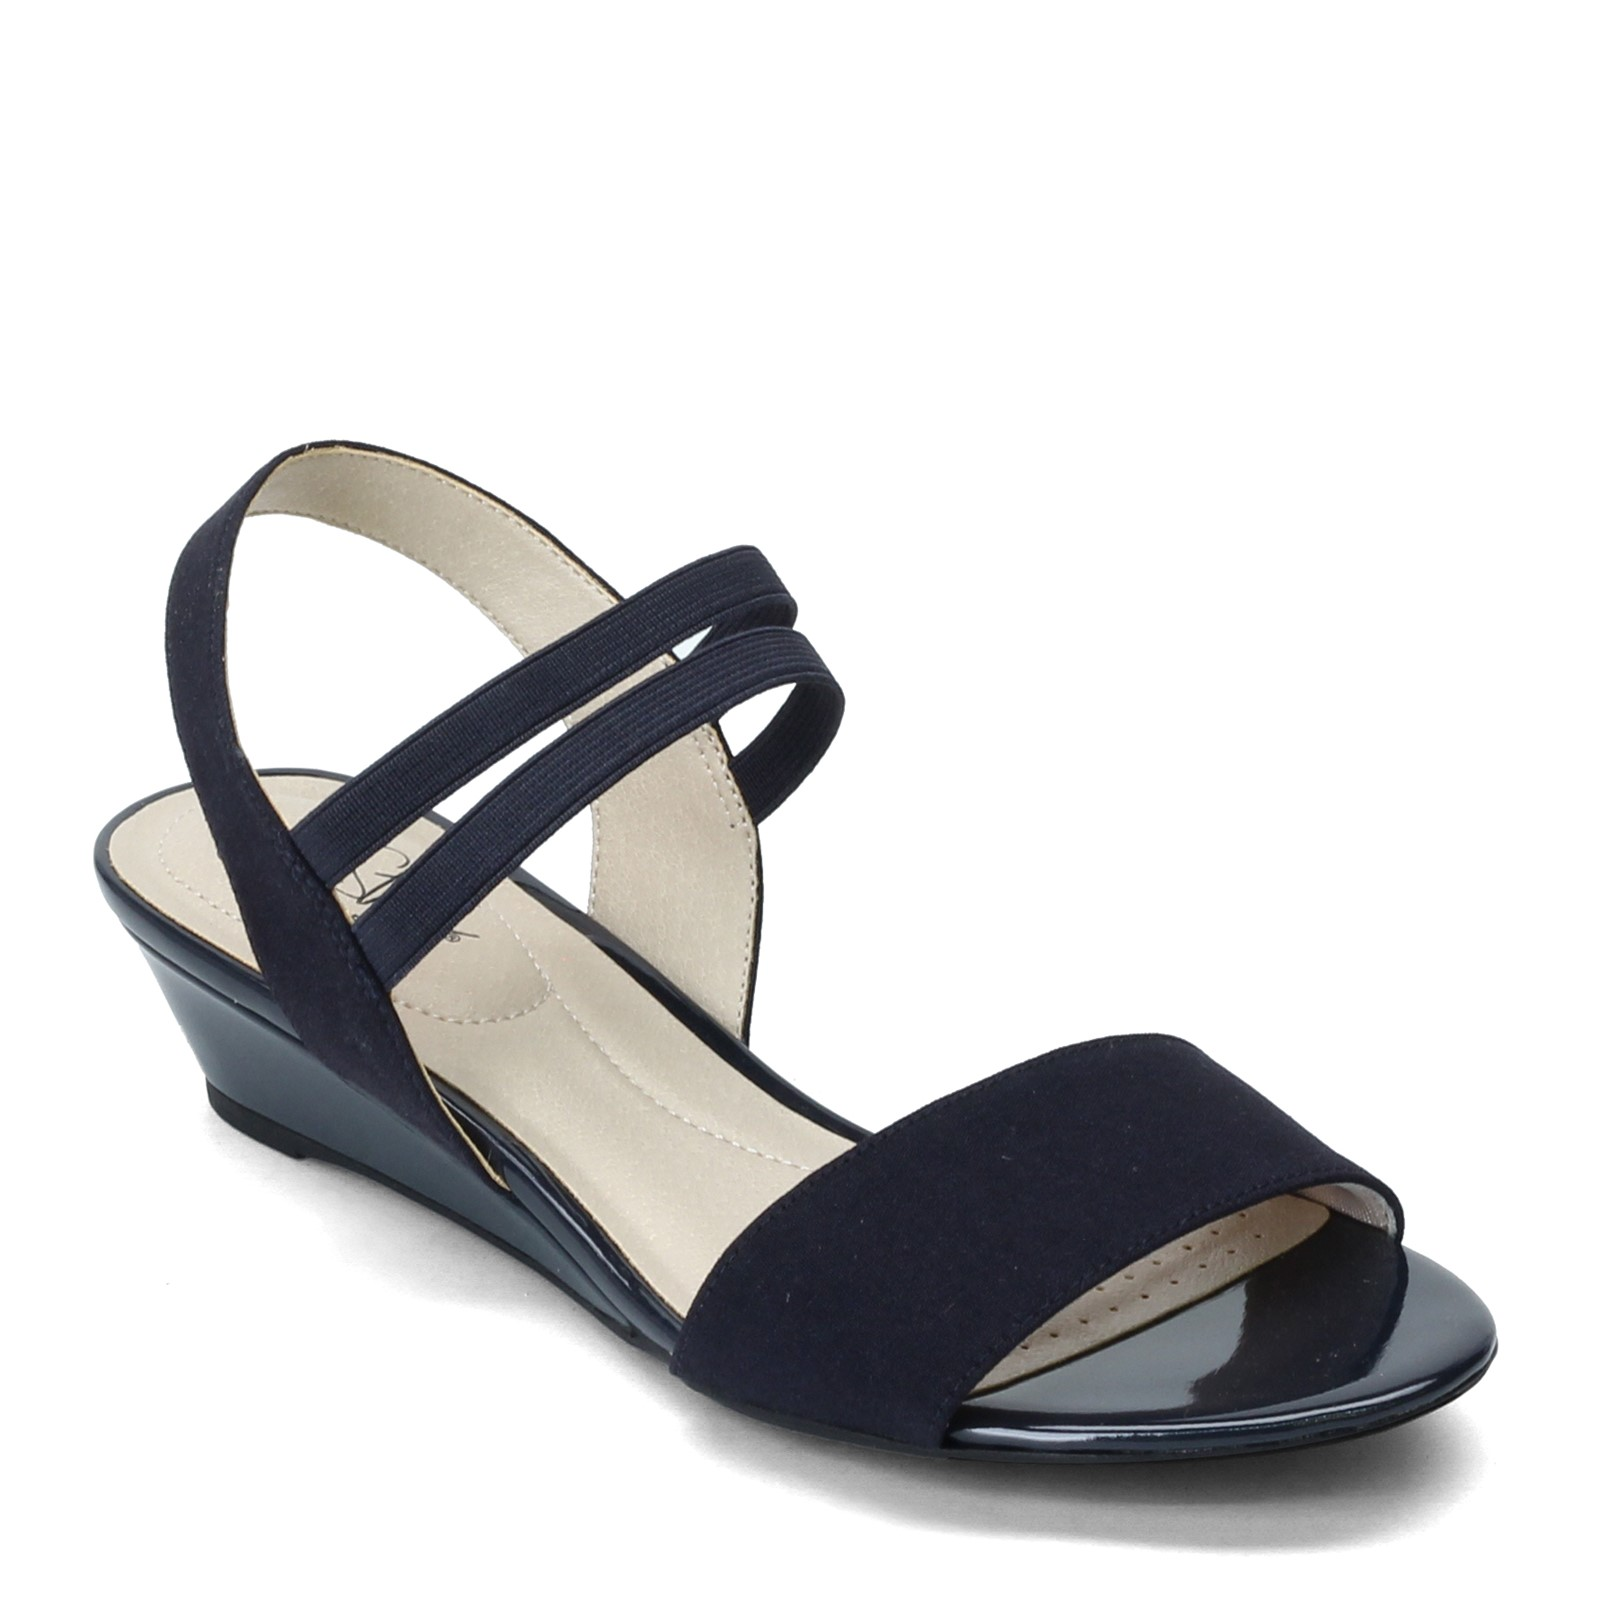 ddffeb80aa Home; Women's Lifestride, Yolo Low Wedge Sandals. Previous. default view ...